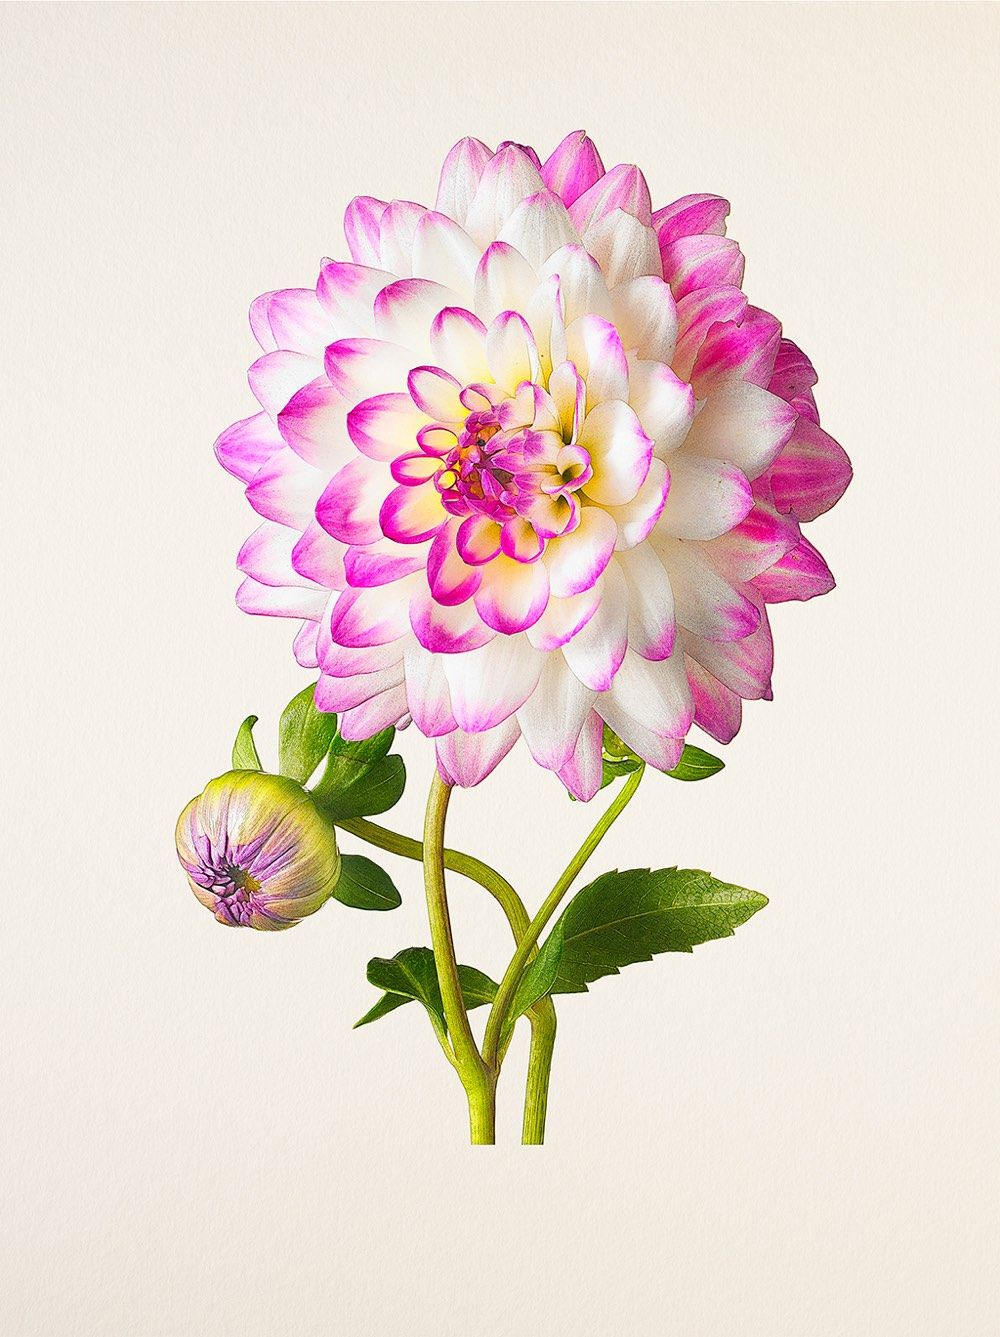 The Most Beautiful Flowers Interesting Things From Kottke